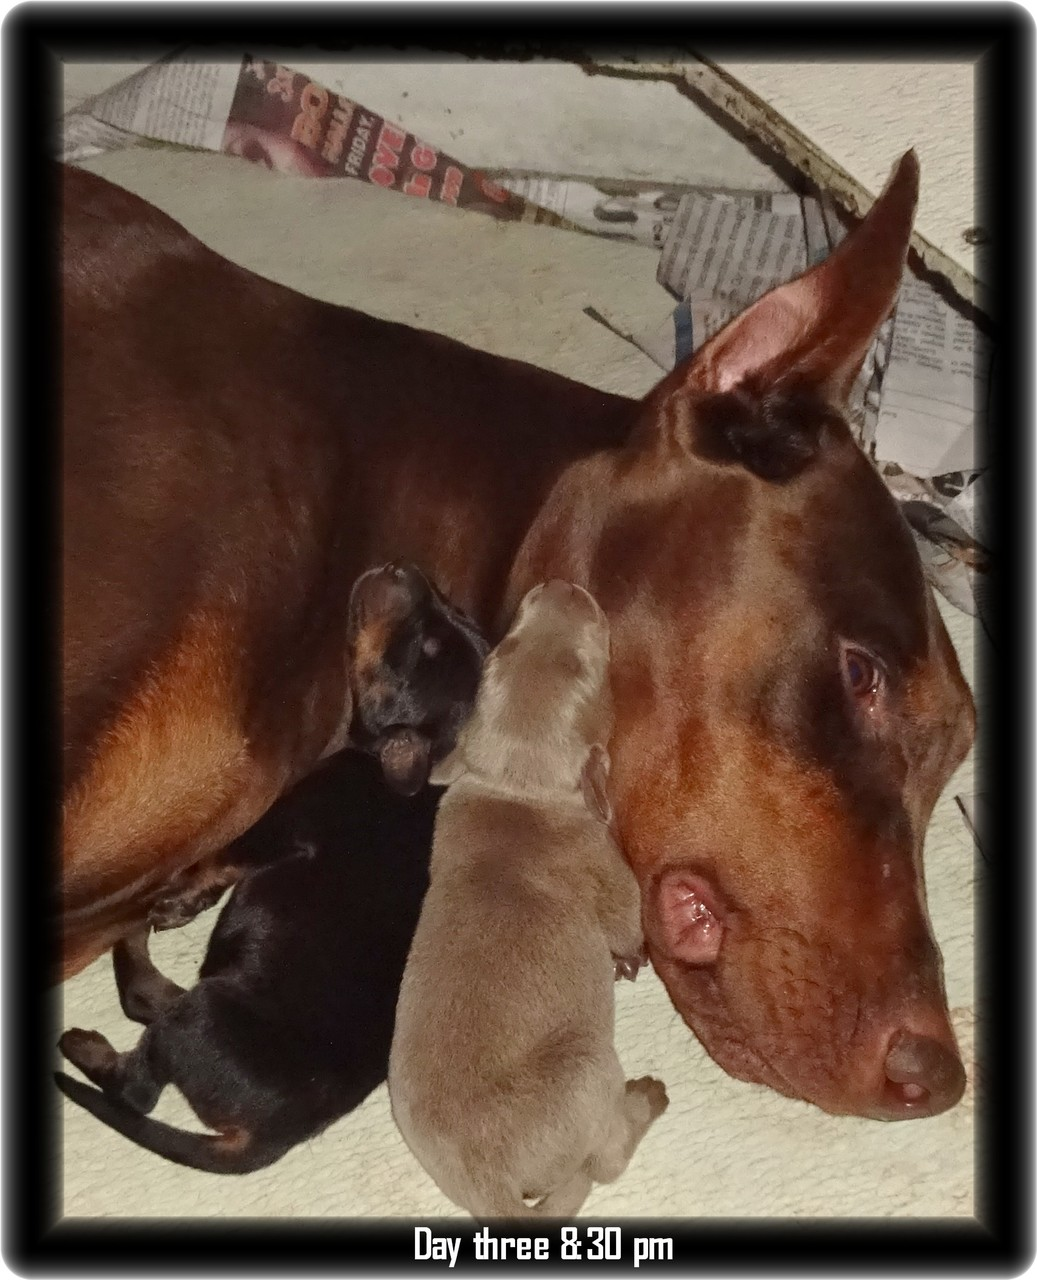 Skona ... Miska & Kodiak pup born 10-20-18... now at home in Kingsport TN